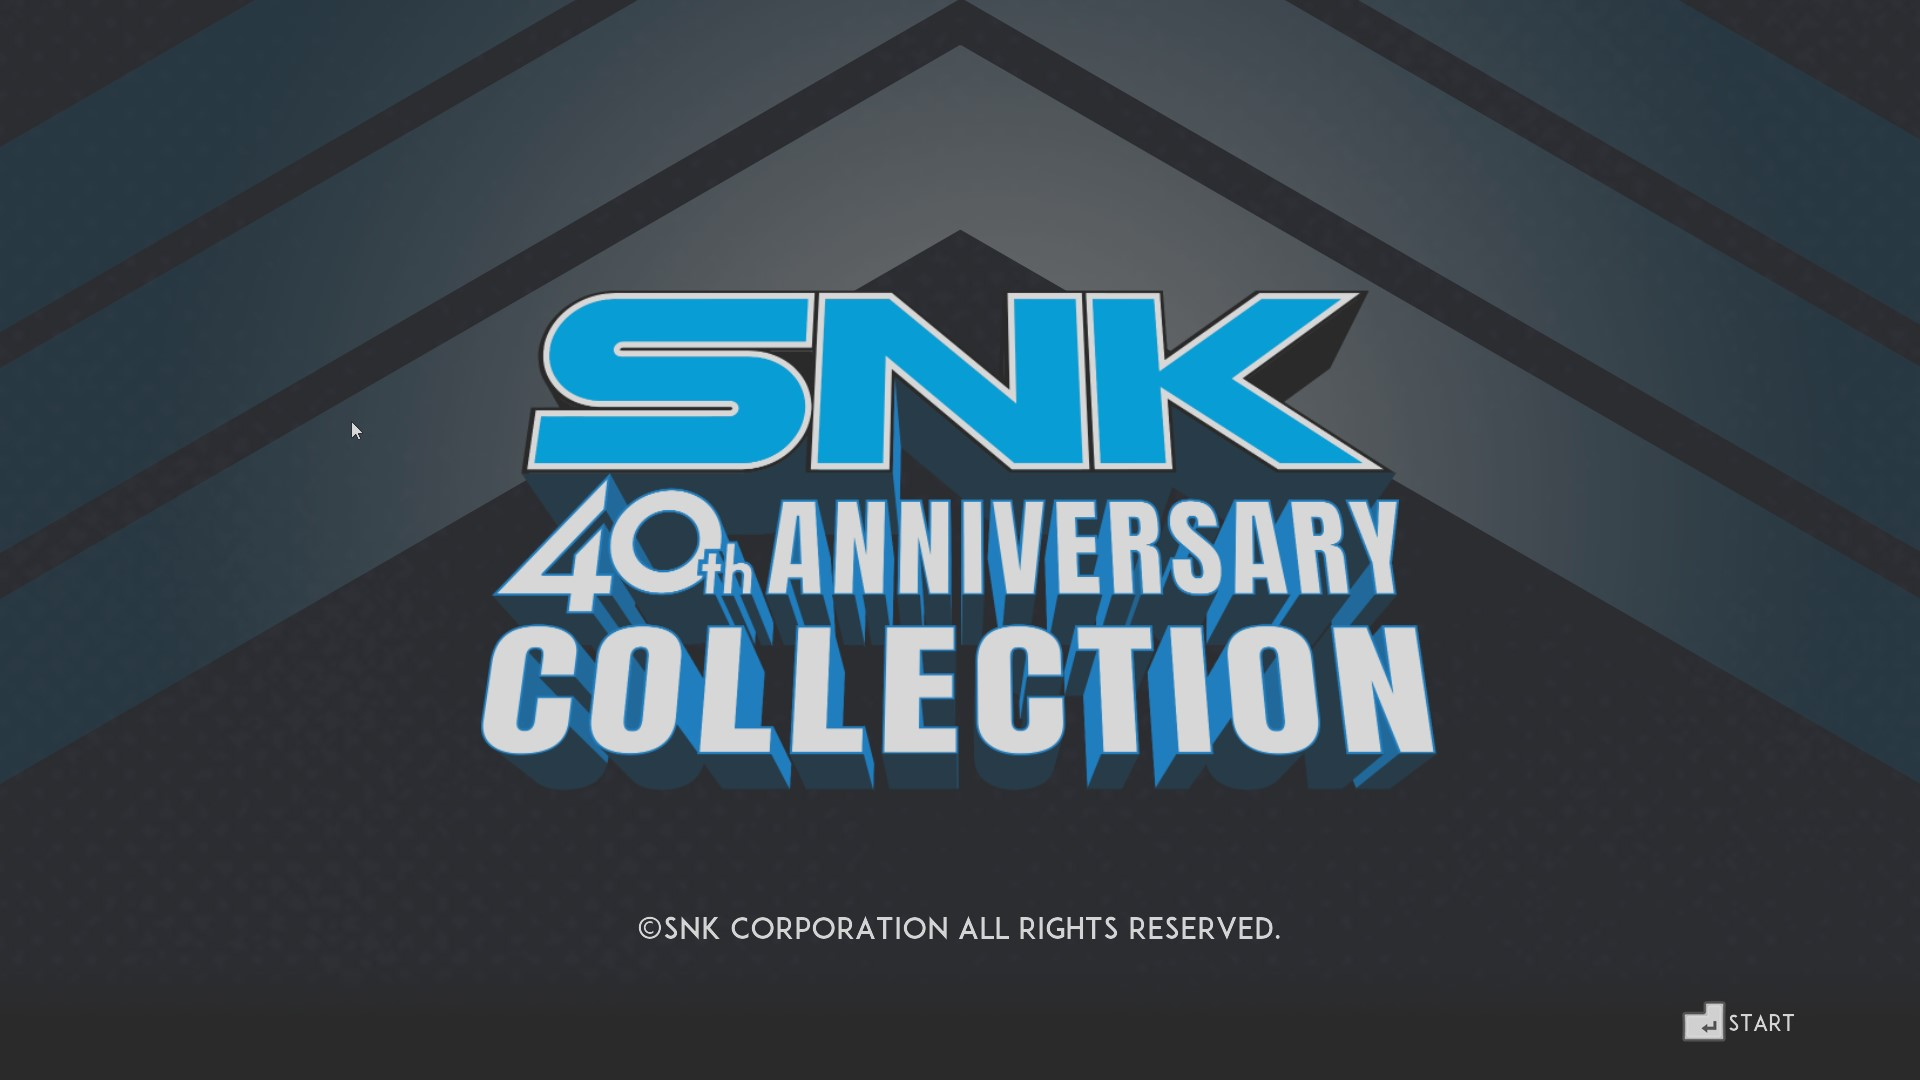 AkinNahtanoj: SNK 40th Anniversary Collection: Chopper I (PC) 24,900 points on 2020-08-23 15:39:55